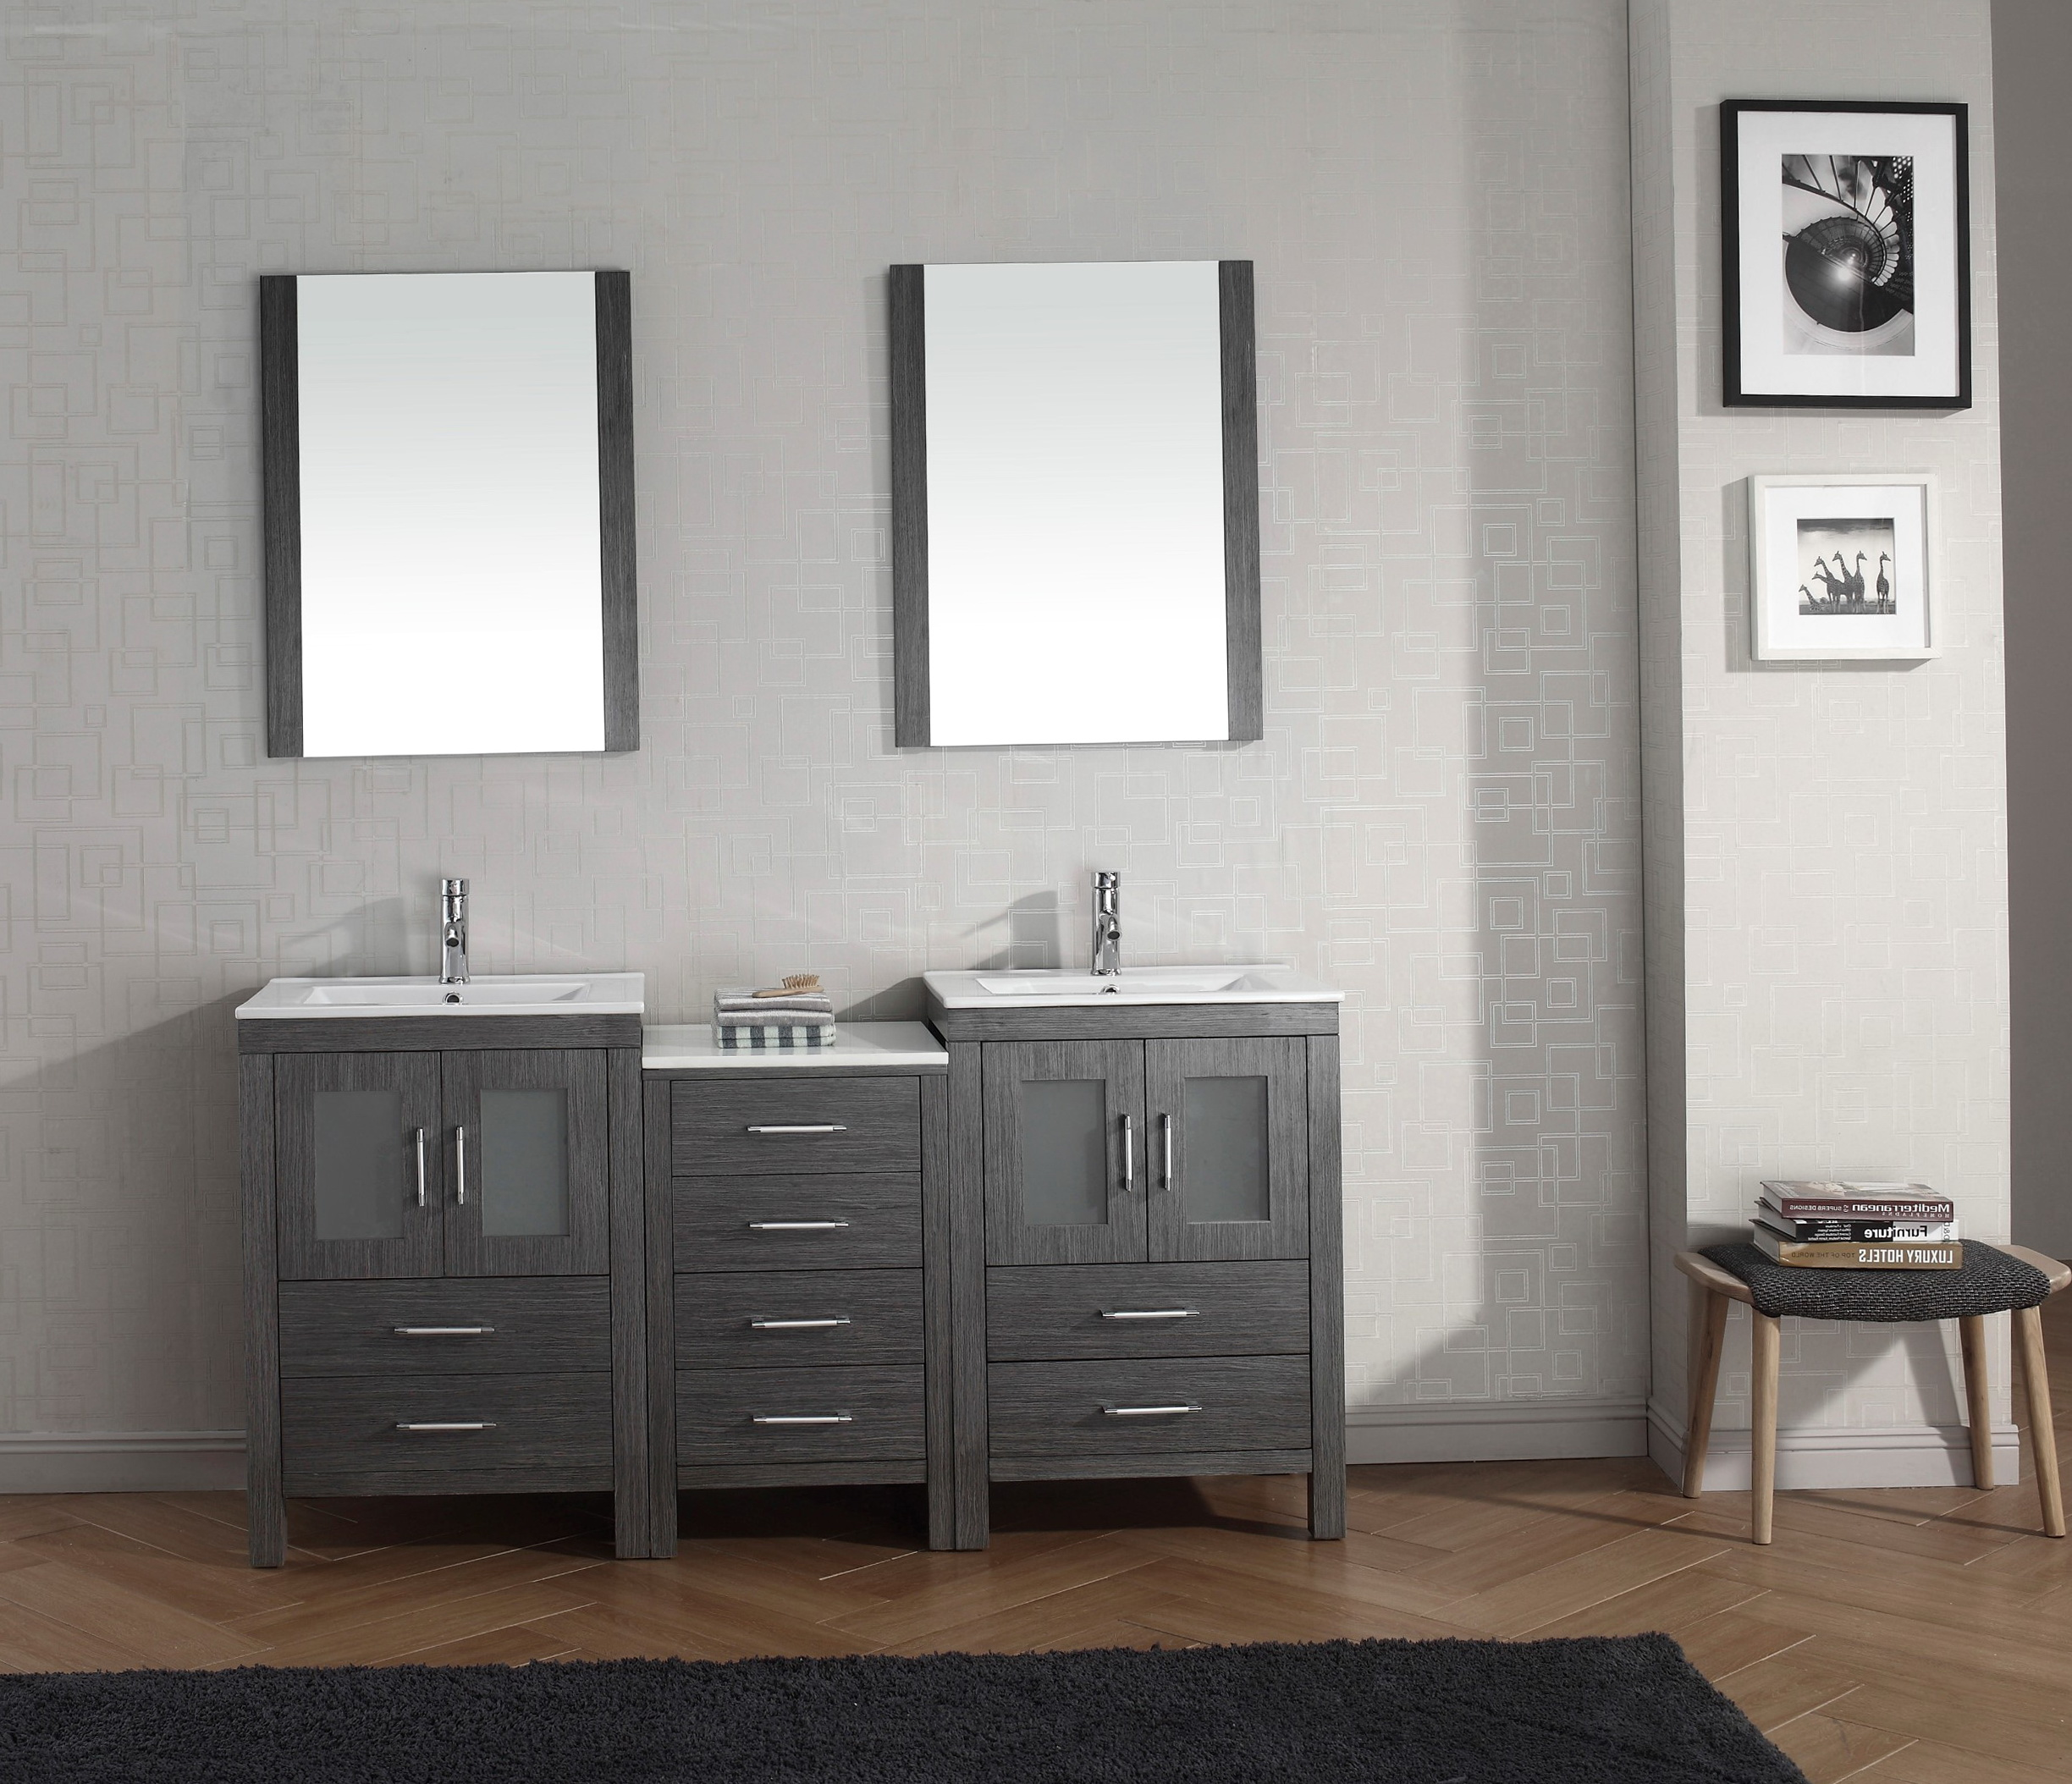 Ikea Bathroom Mirror Uk Home Design Ideas